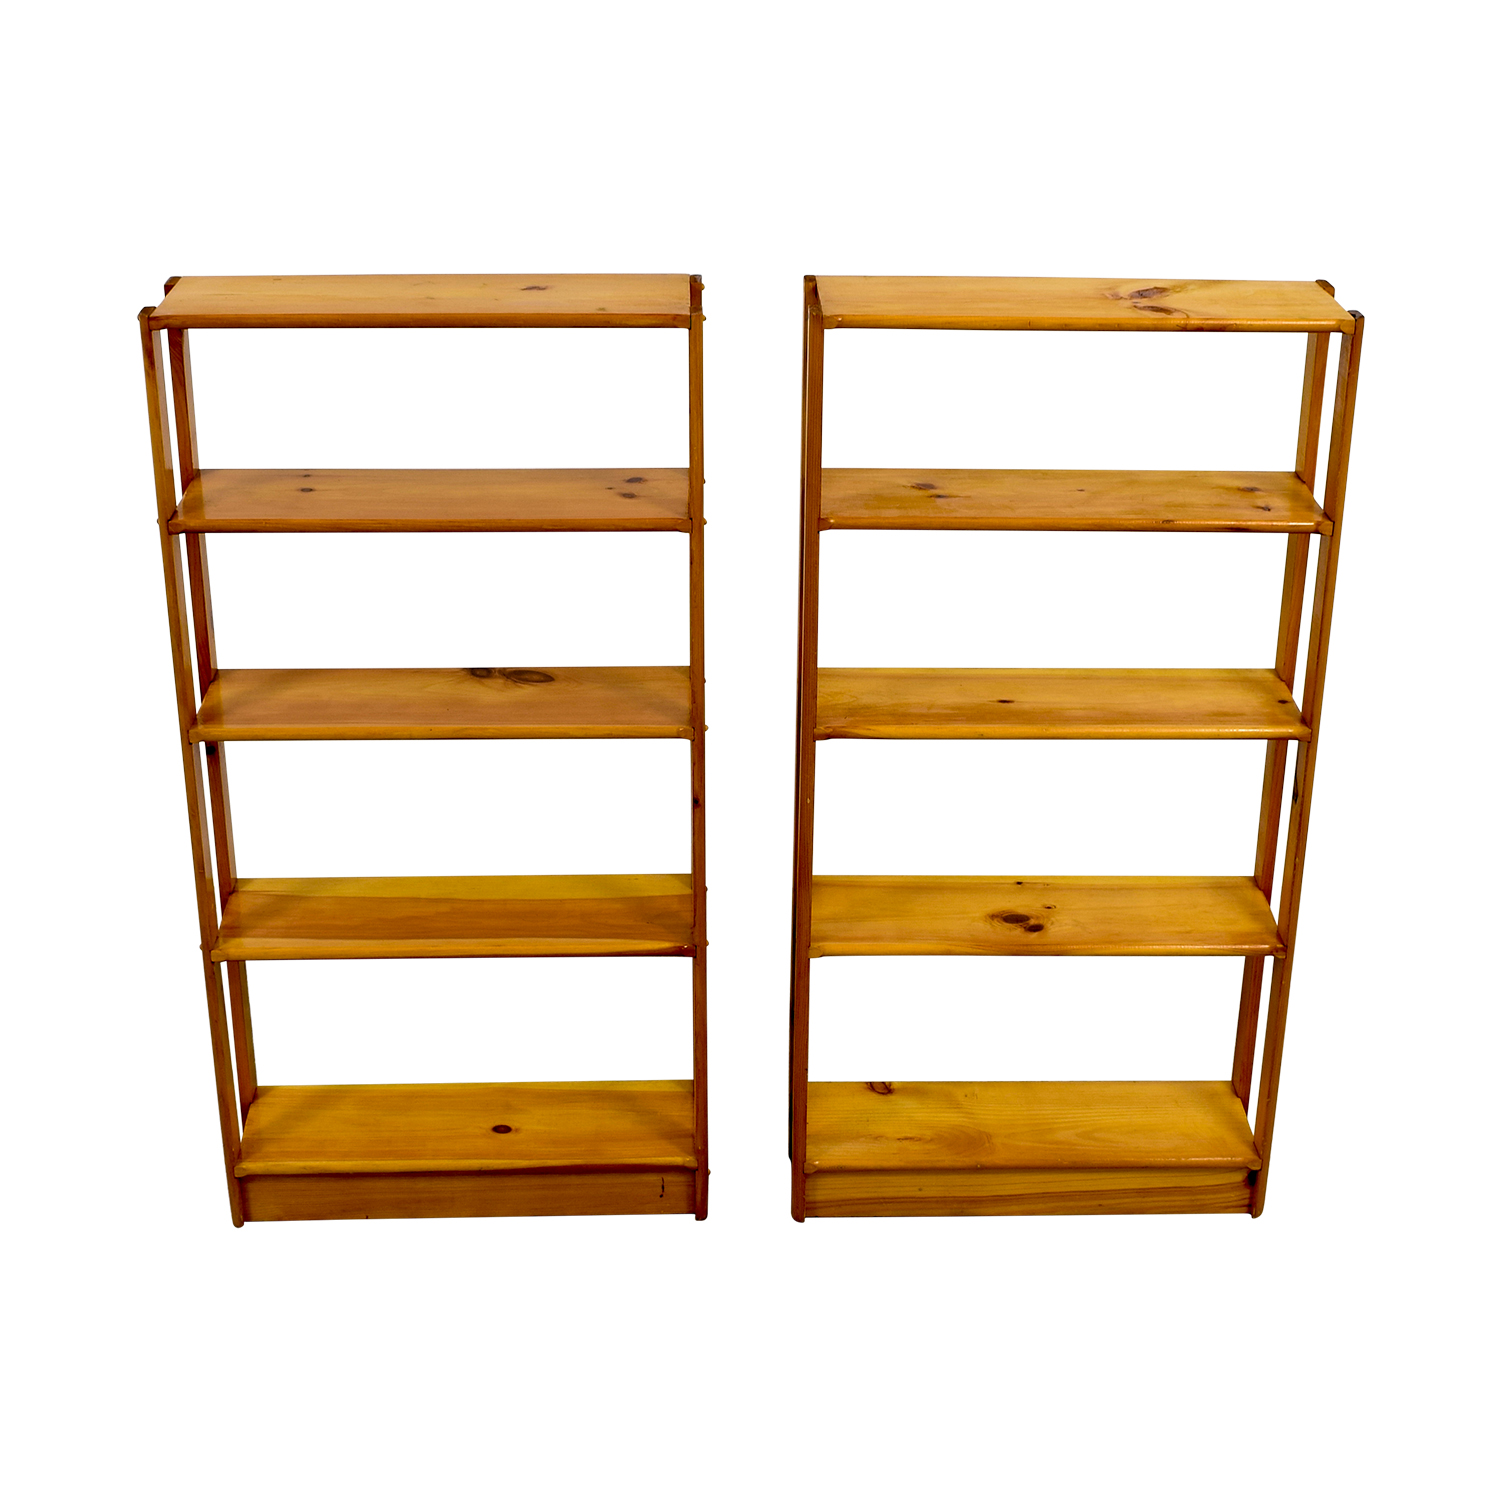 Slim Light Brown Wooden Bookshelves nj